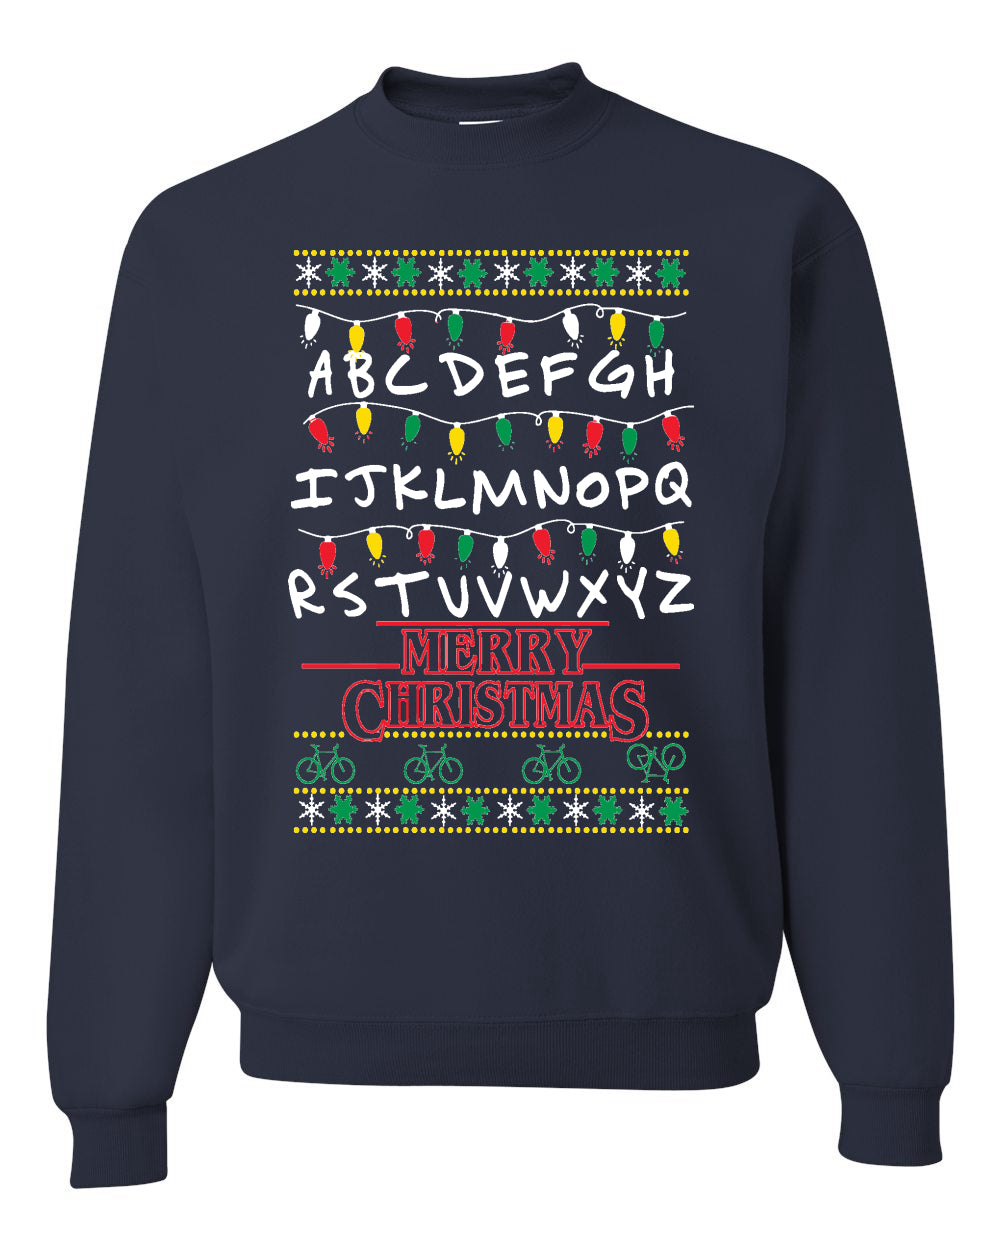 Alphabet A-Z Christmas lights Christmas Unisex Crewneck Graphic Sweatshirt